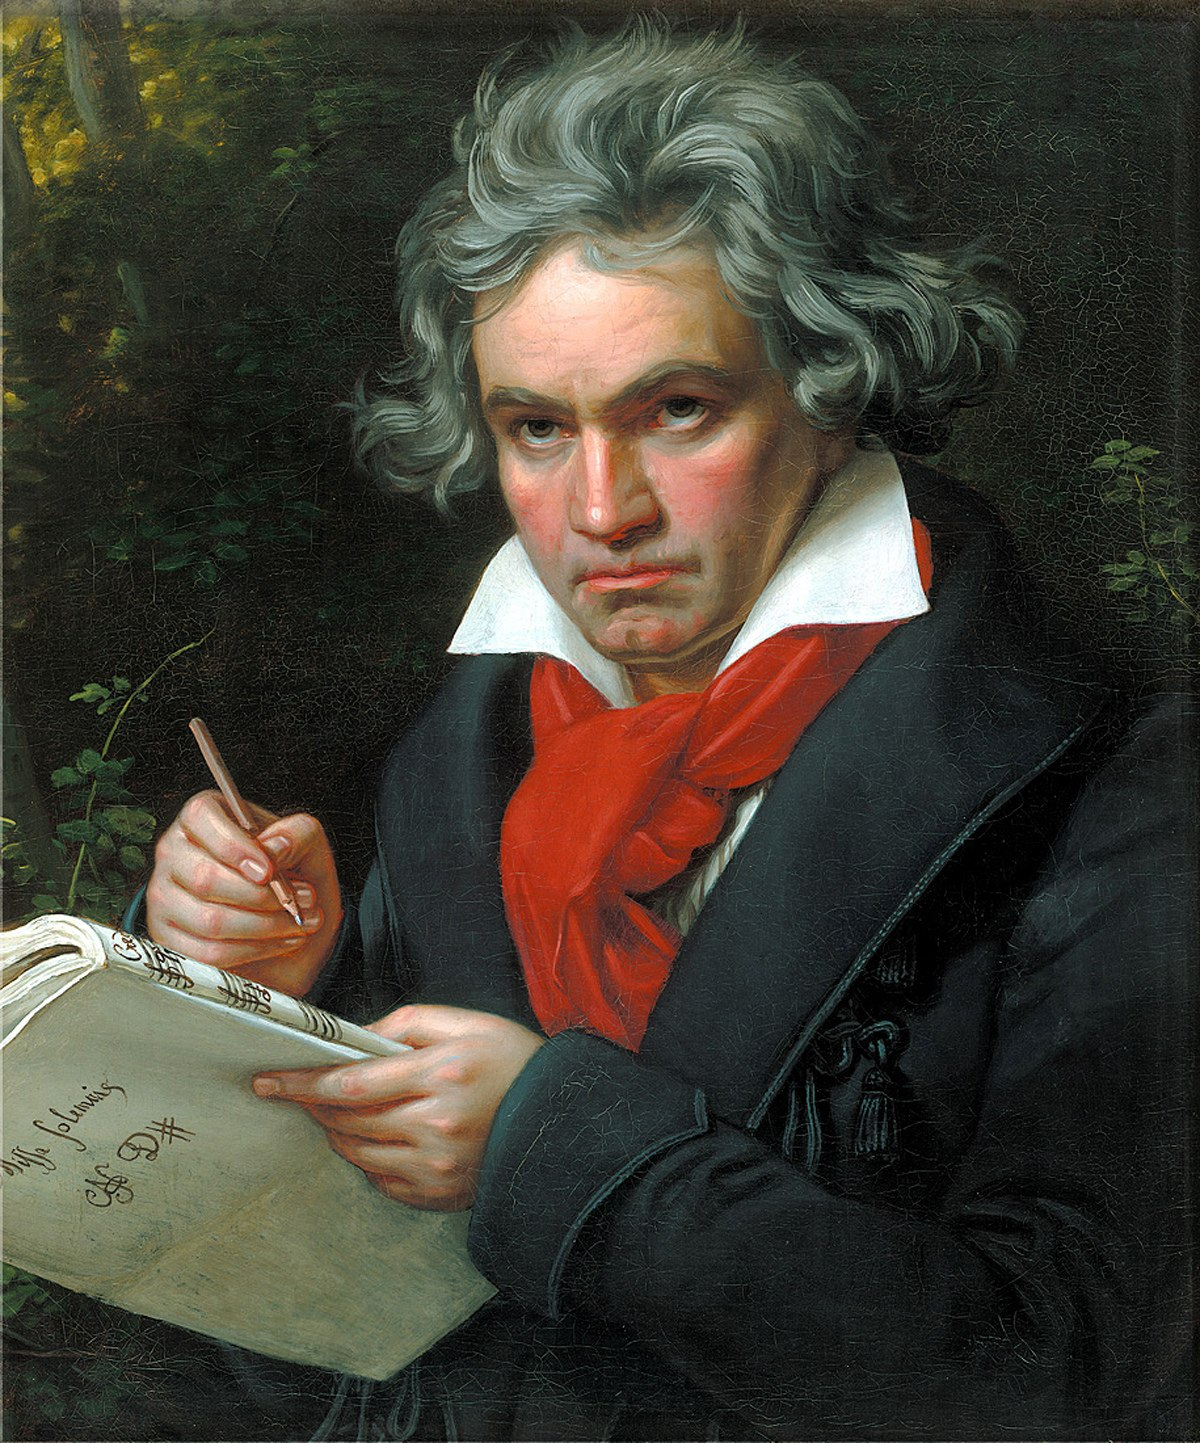 https://upload.wikimedia.org/wikipedia/commons/thumb/6/6f/Beethoven.jpg/1200px-Beethoven.jpg